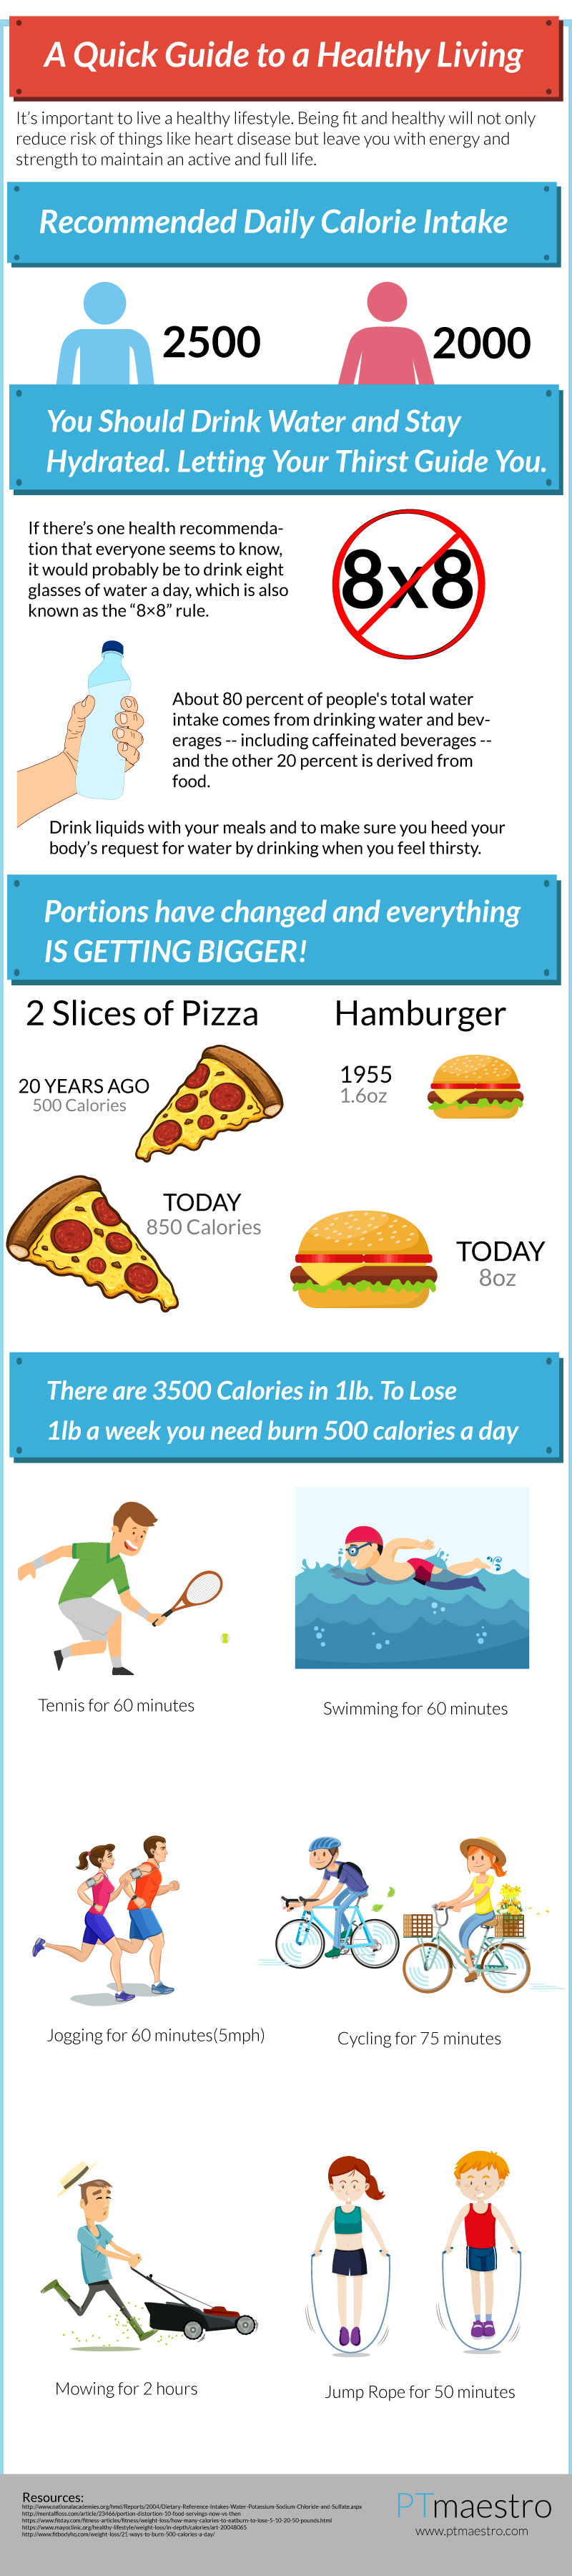 A Quick Guide to Healthy Living |  Infographic